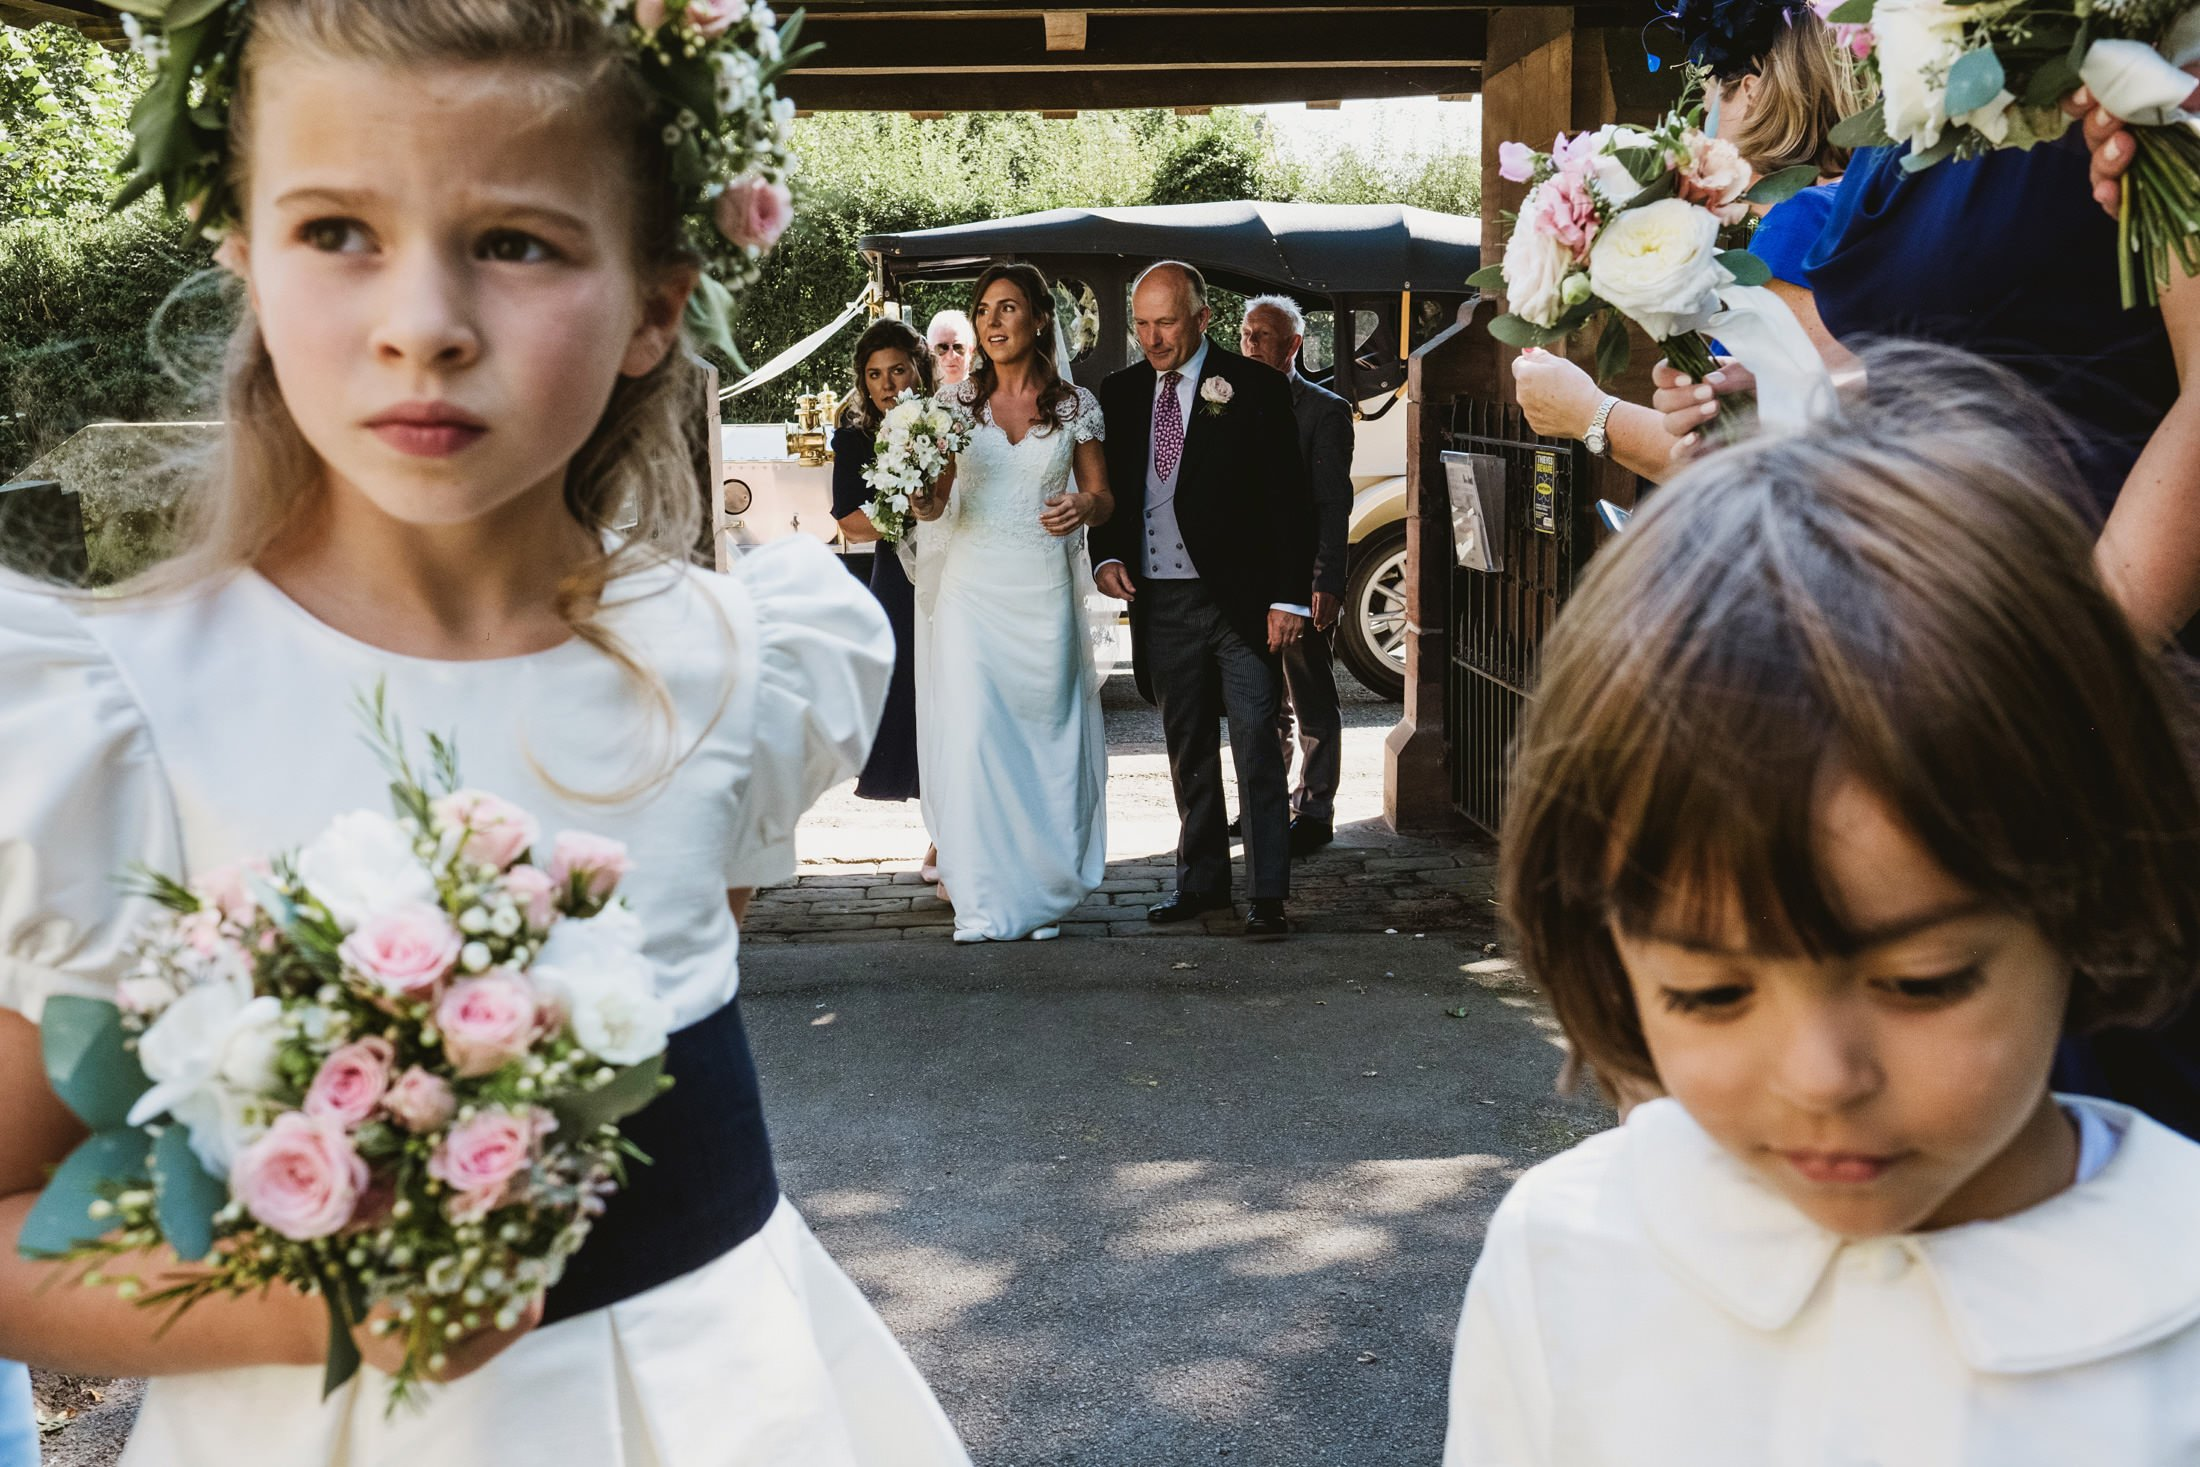 bride and wedding party arriving at church with flower girl and page boy in foreground.